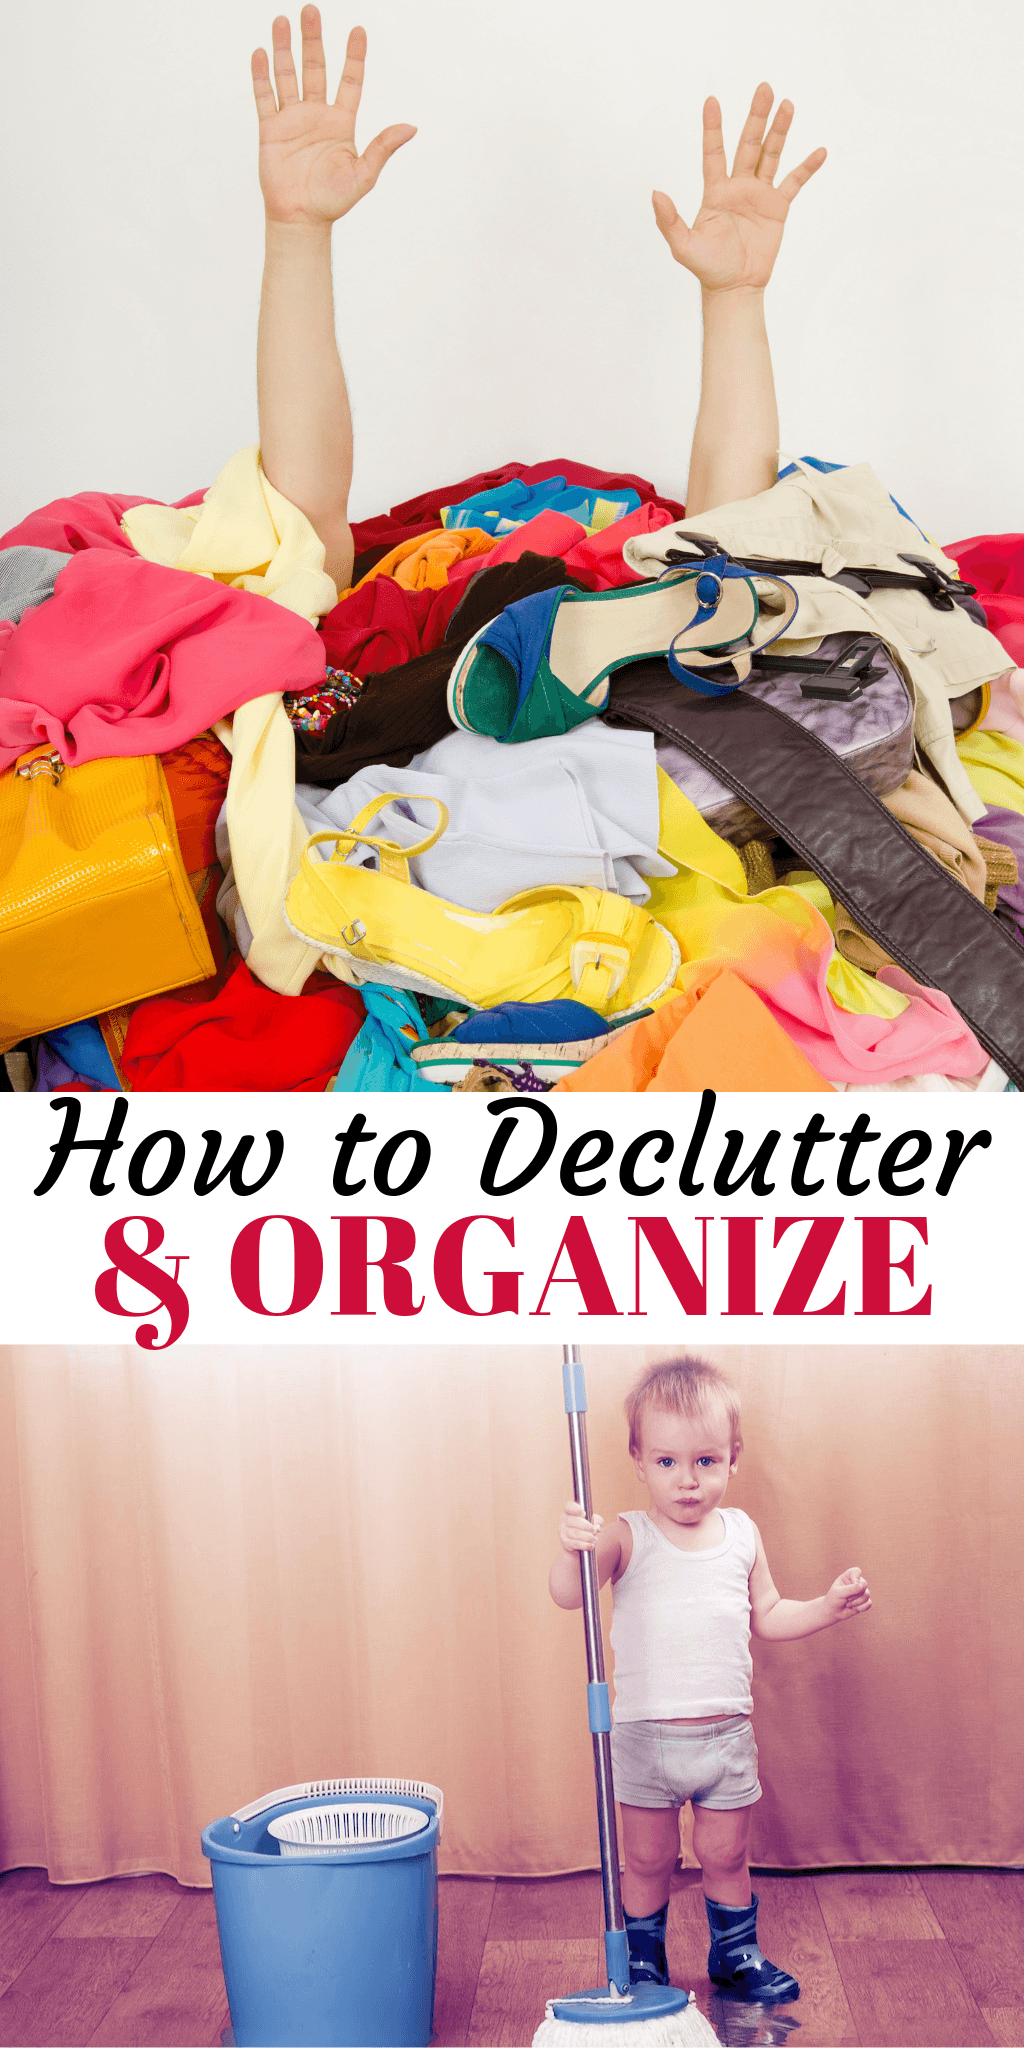 If you've decided to get a handle on your clutter, this article will offer some help with tips on how to de clutter and for maintaining your home afterward. #DineDreamDiscover #JustPlumCrazy #RV #FullTimeRV #TravelBlogger #Travel #GoRVing #TinyLiving #Declutter #ClutterFree #LifeInTheRV